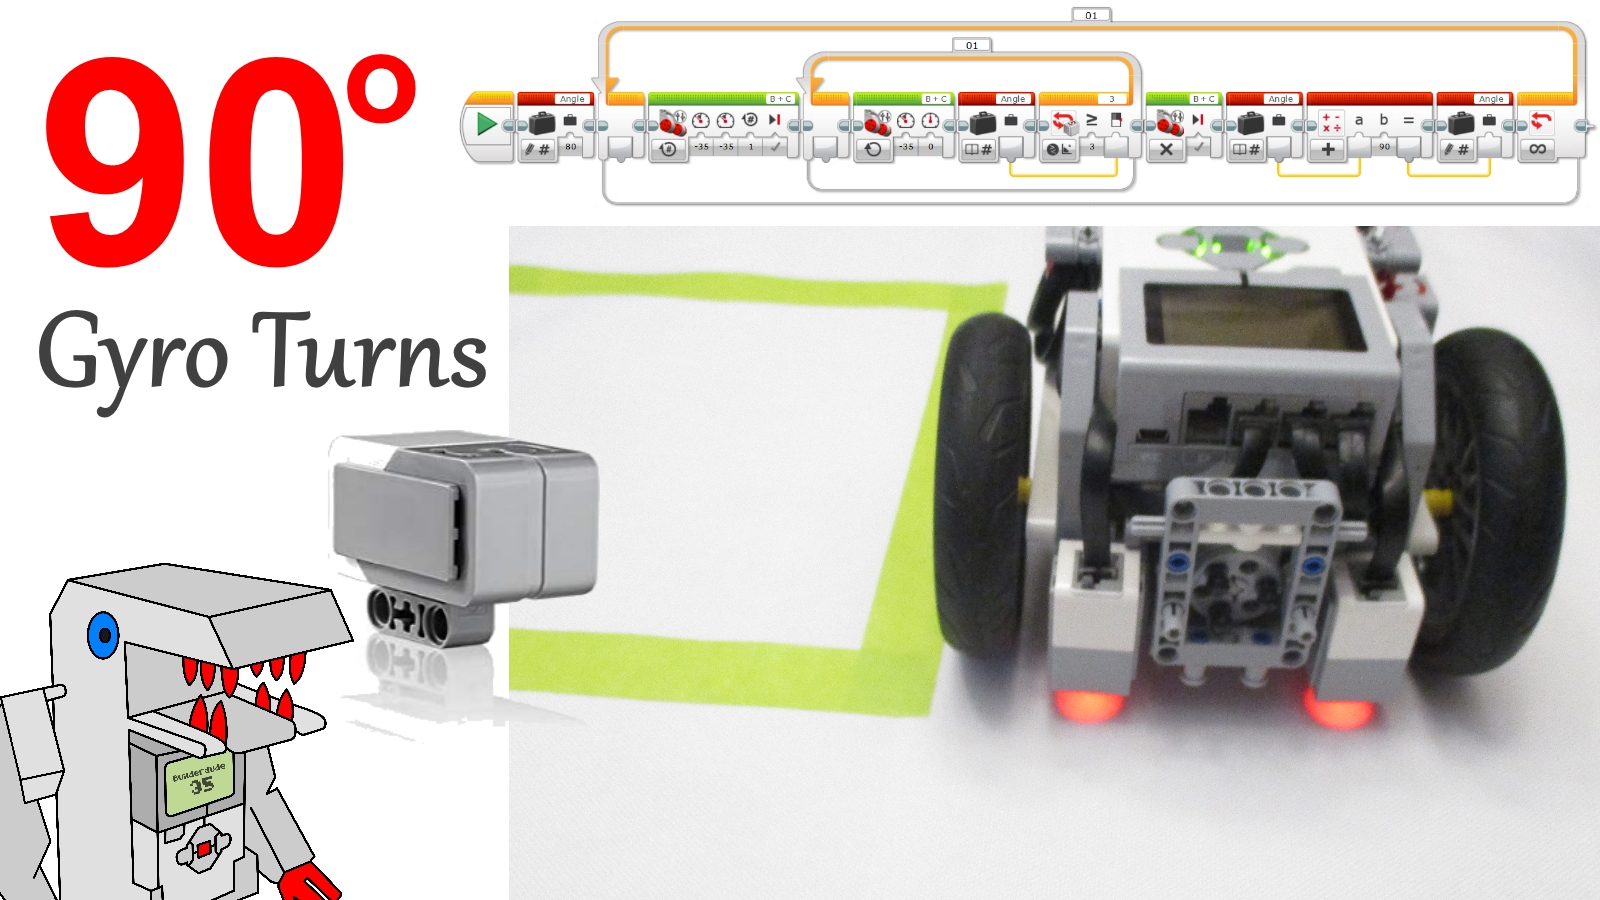 program accurate 90 degree turns with the ev3 gyro sensorprogram accurate 90 degree turns with the ev3 gyro sensor